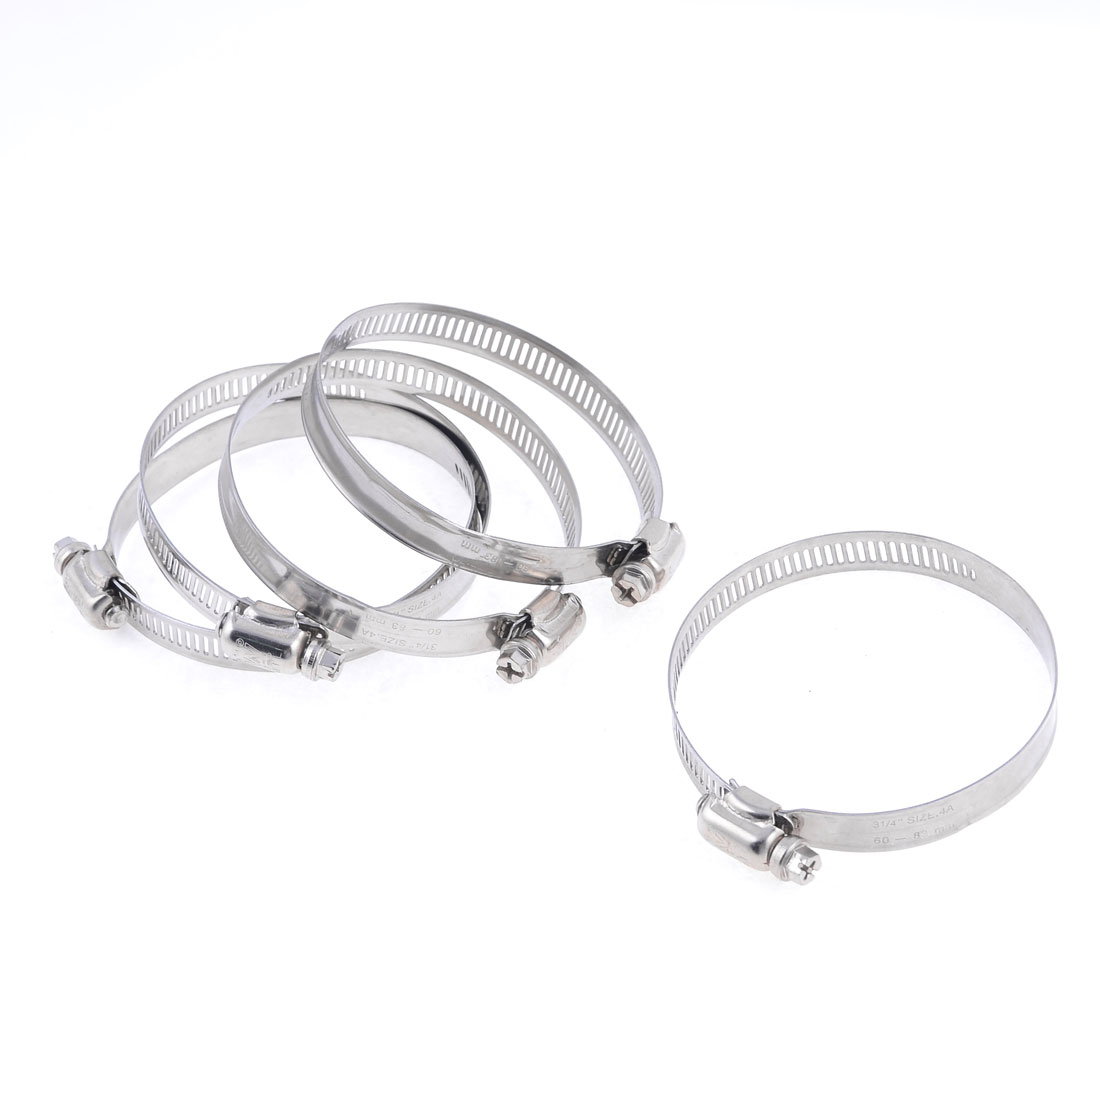 5 Pcs Silver Tone Adjustable 60-83mm Range Metal Worm Drive Hose Clamp